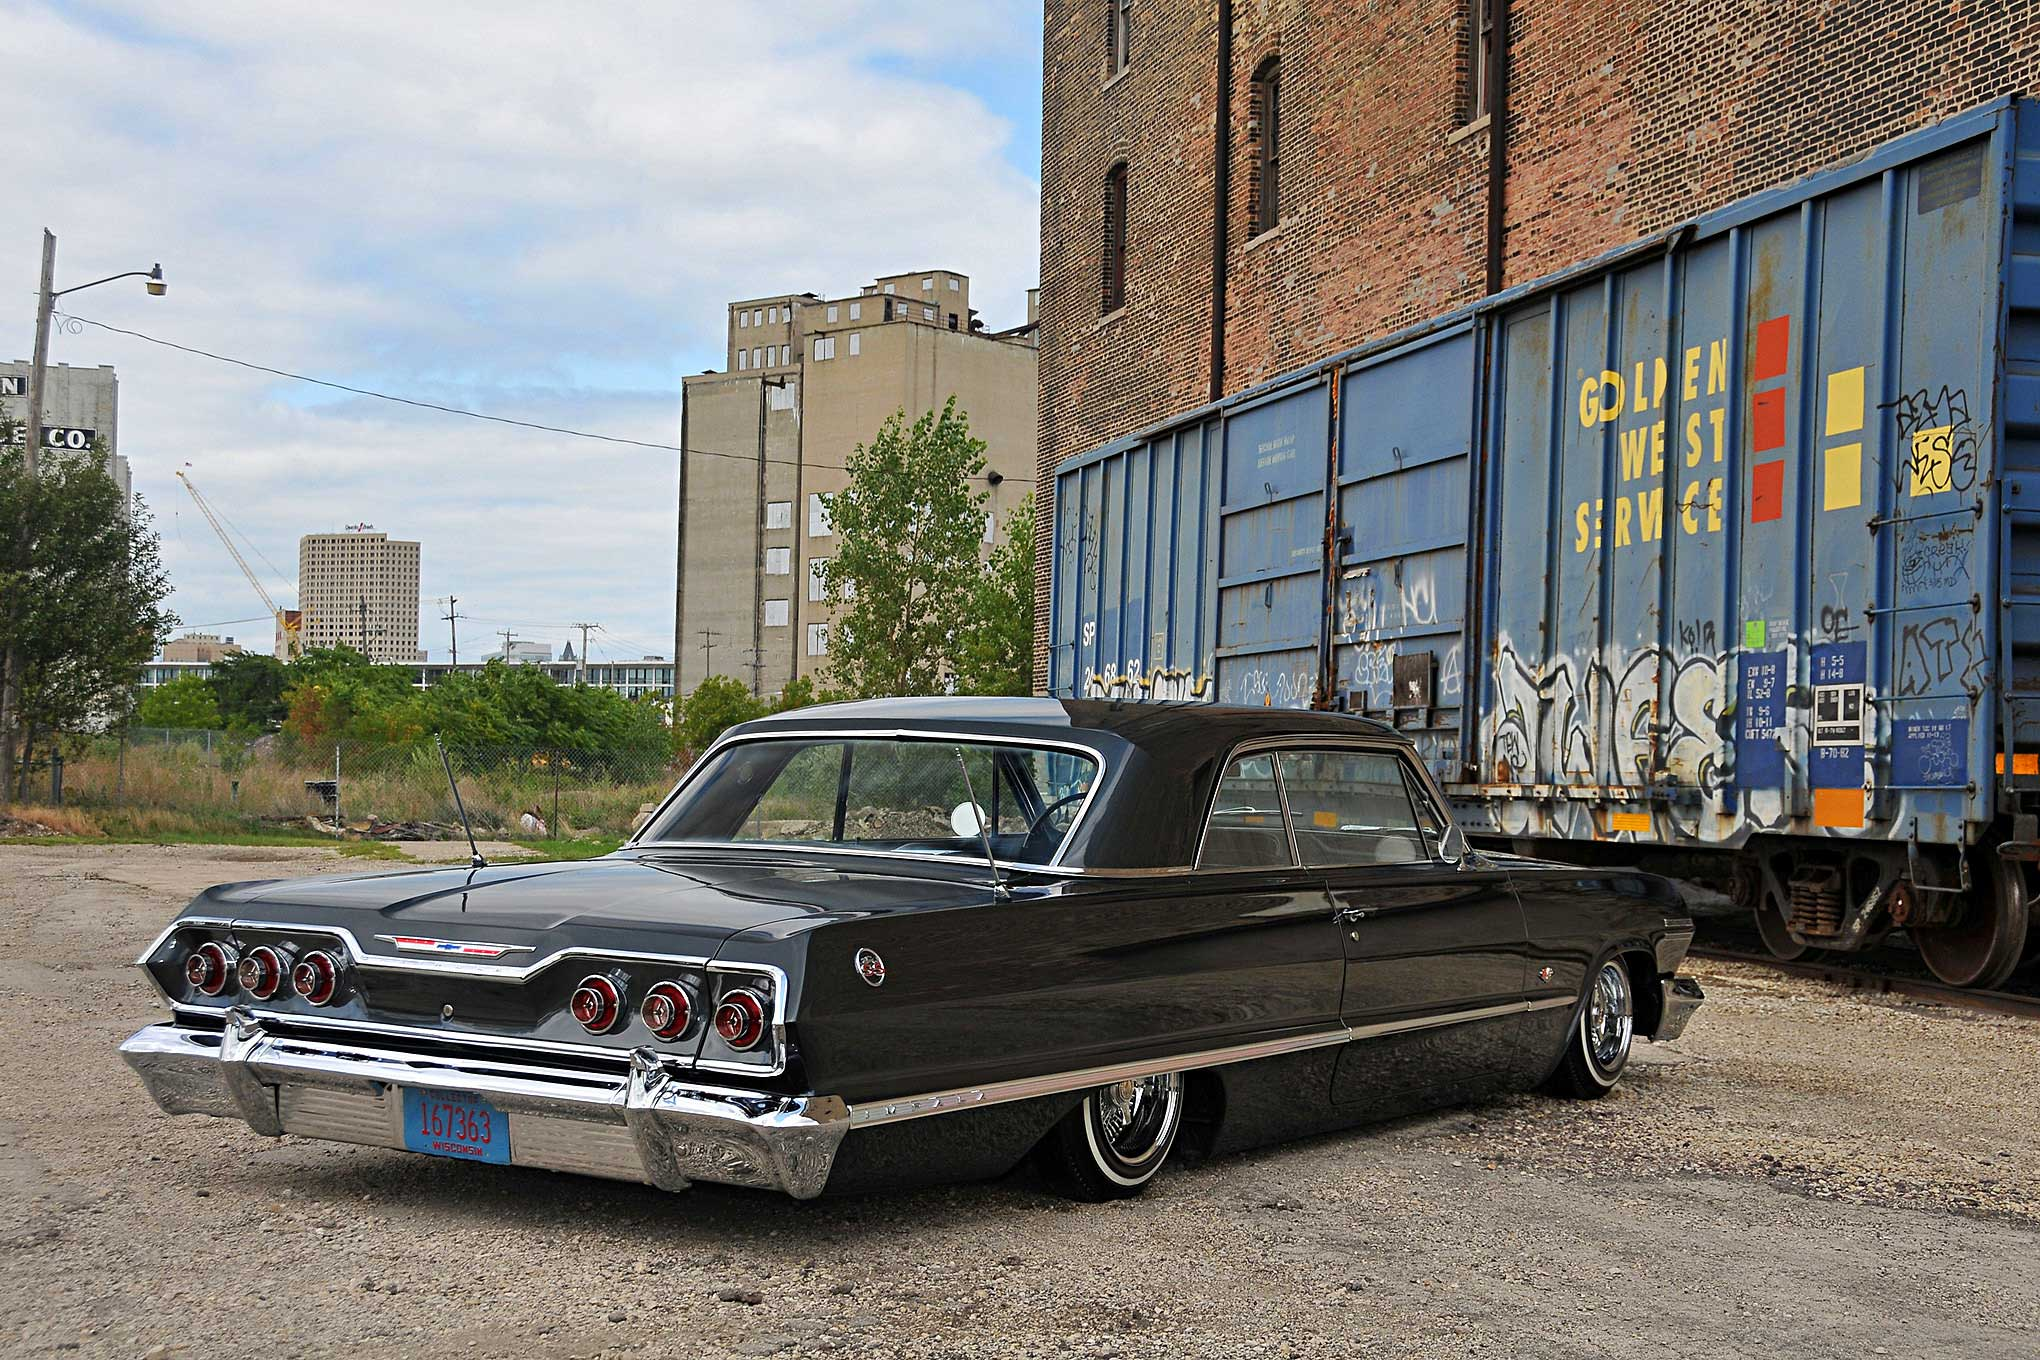 1963 Chevrolet Impala Ss In The Shadows